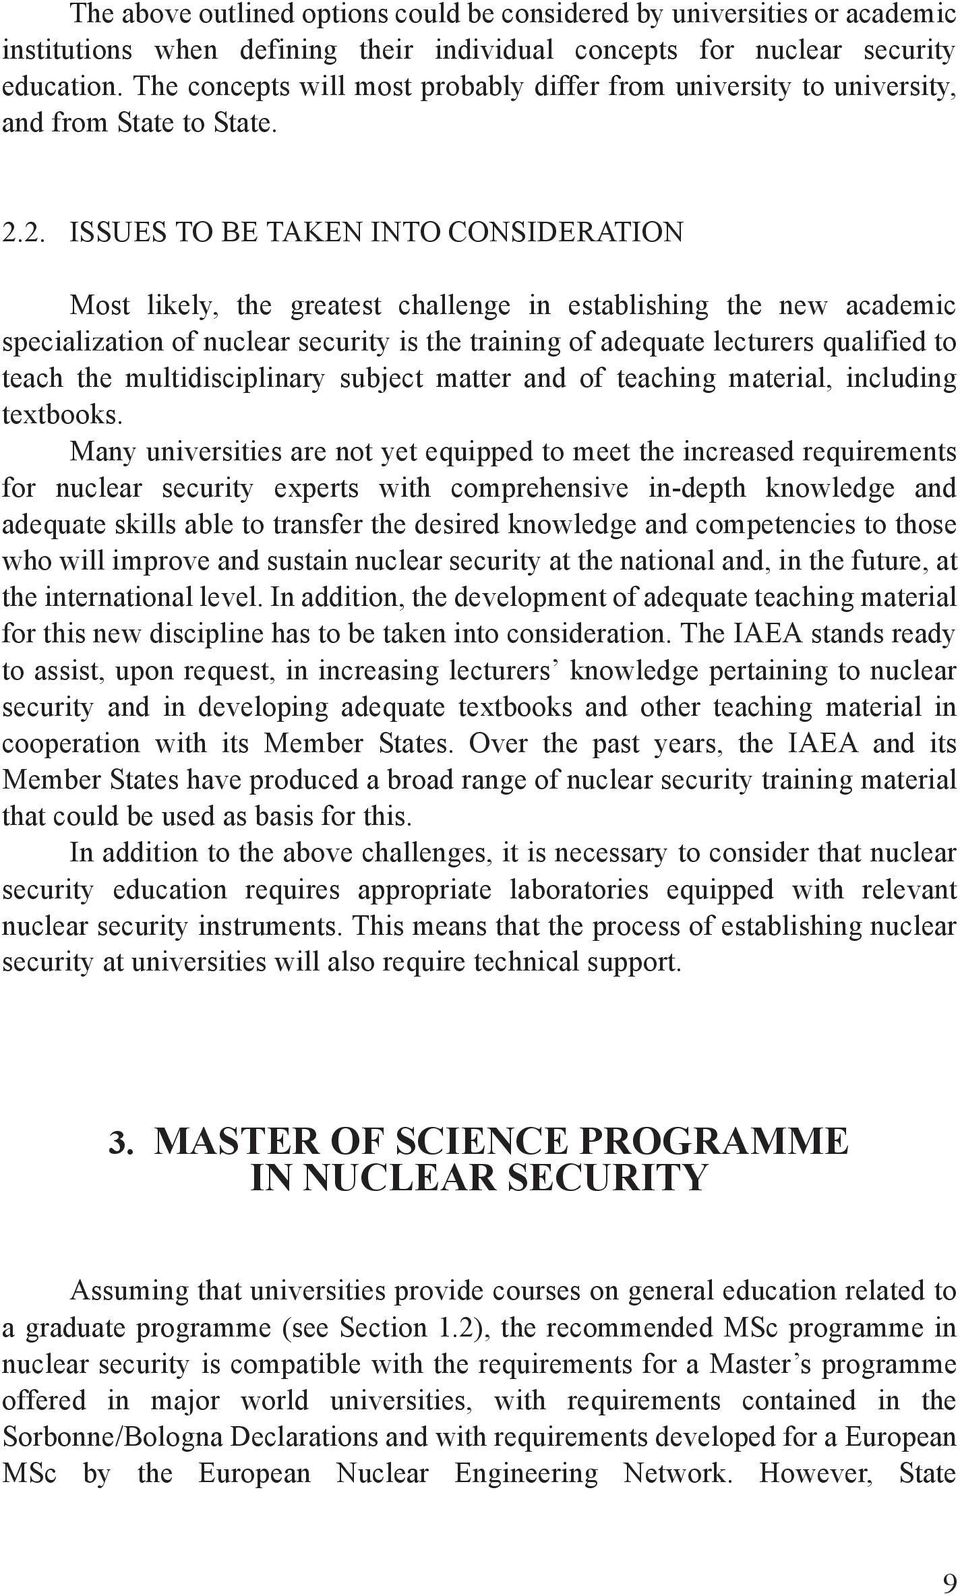 2. ISSUES TO BE TAKEN INTO CONSIDERATION Most likely, the greatest challenge in establishing the new academic specialization of nuclear security is the training of adequate lecturers qualified to